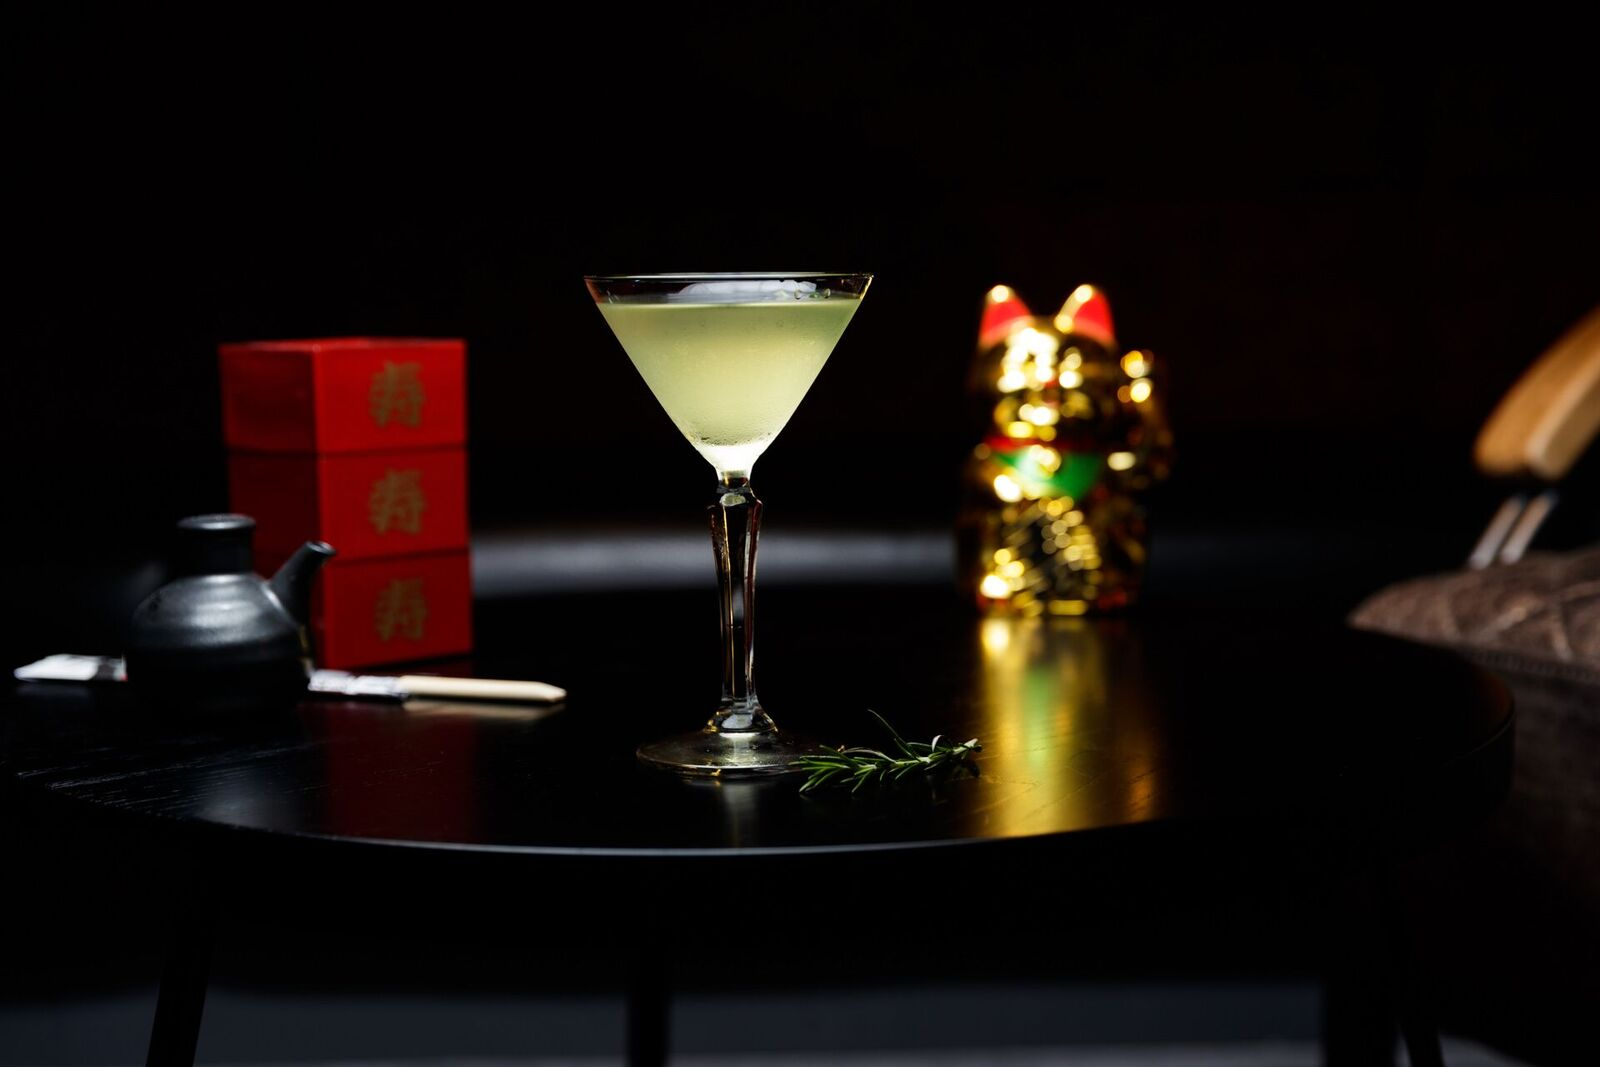 Shinsen Martini